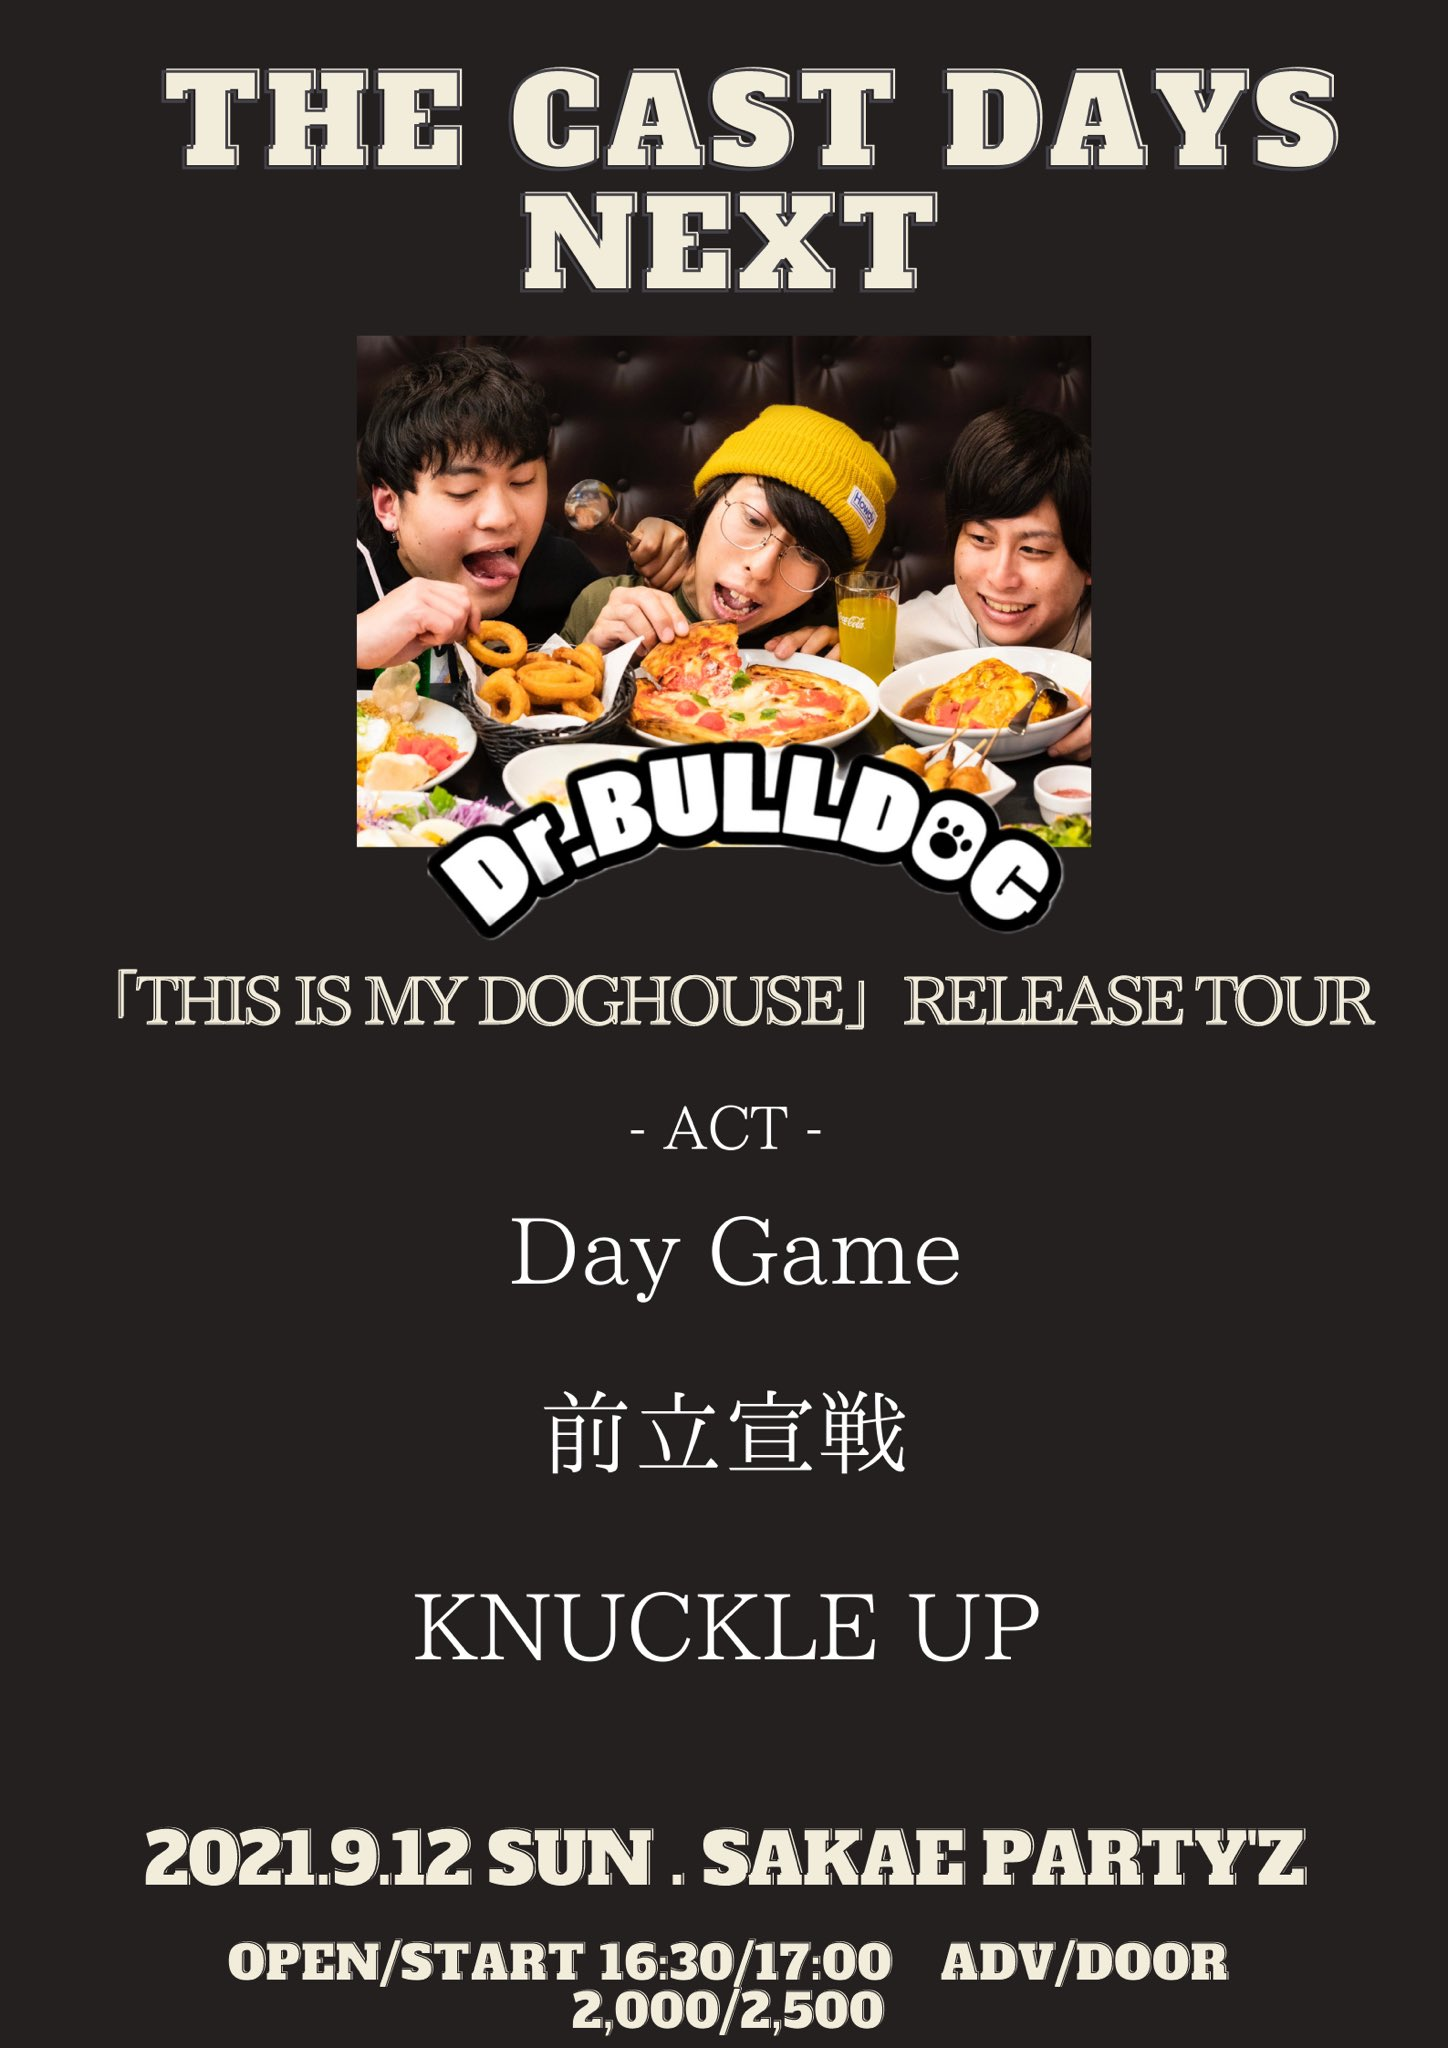 THE CAST DAYS NEXT 「THIS IS MY DOGHOUSE」RELEASE TOUR